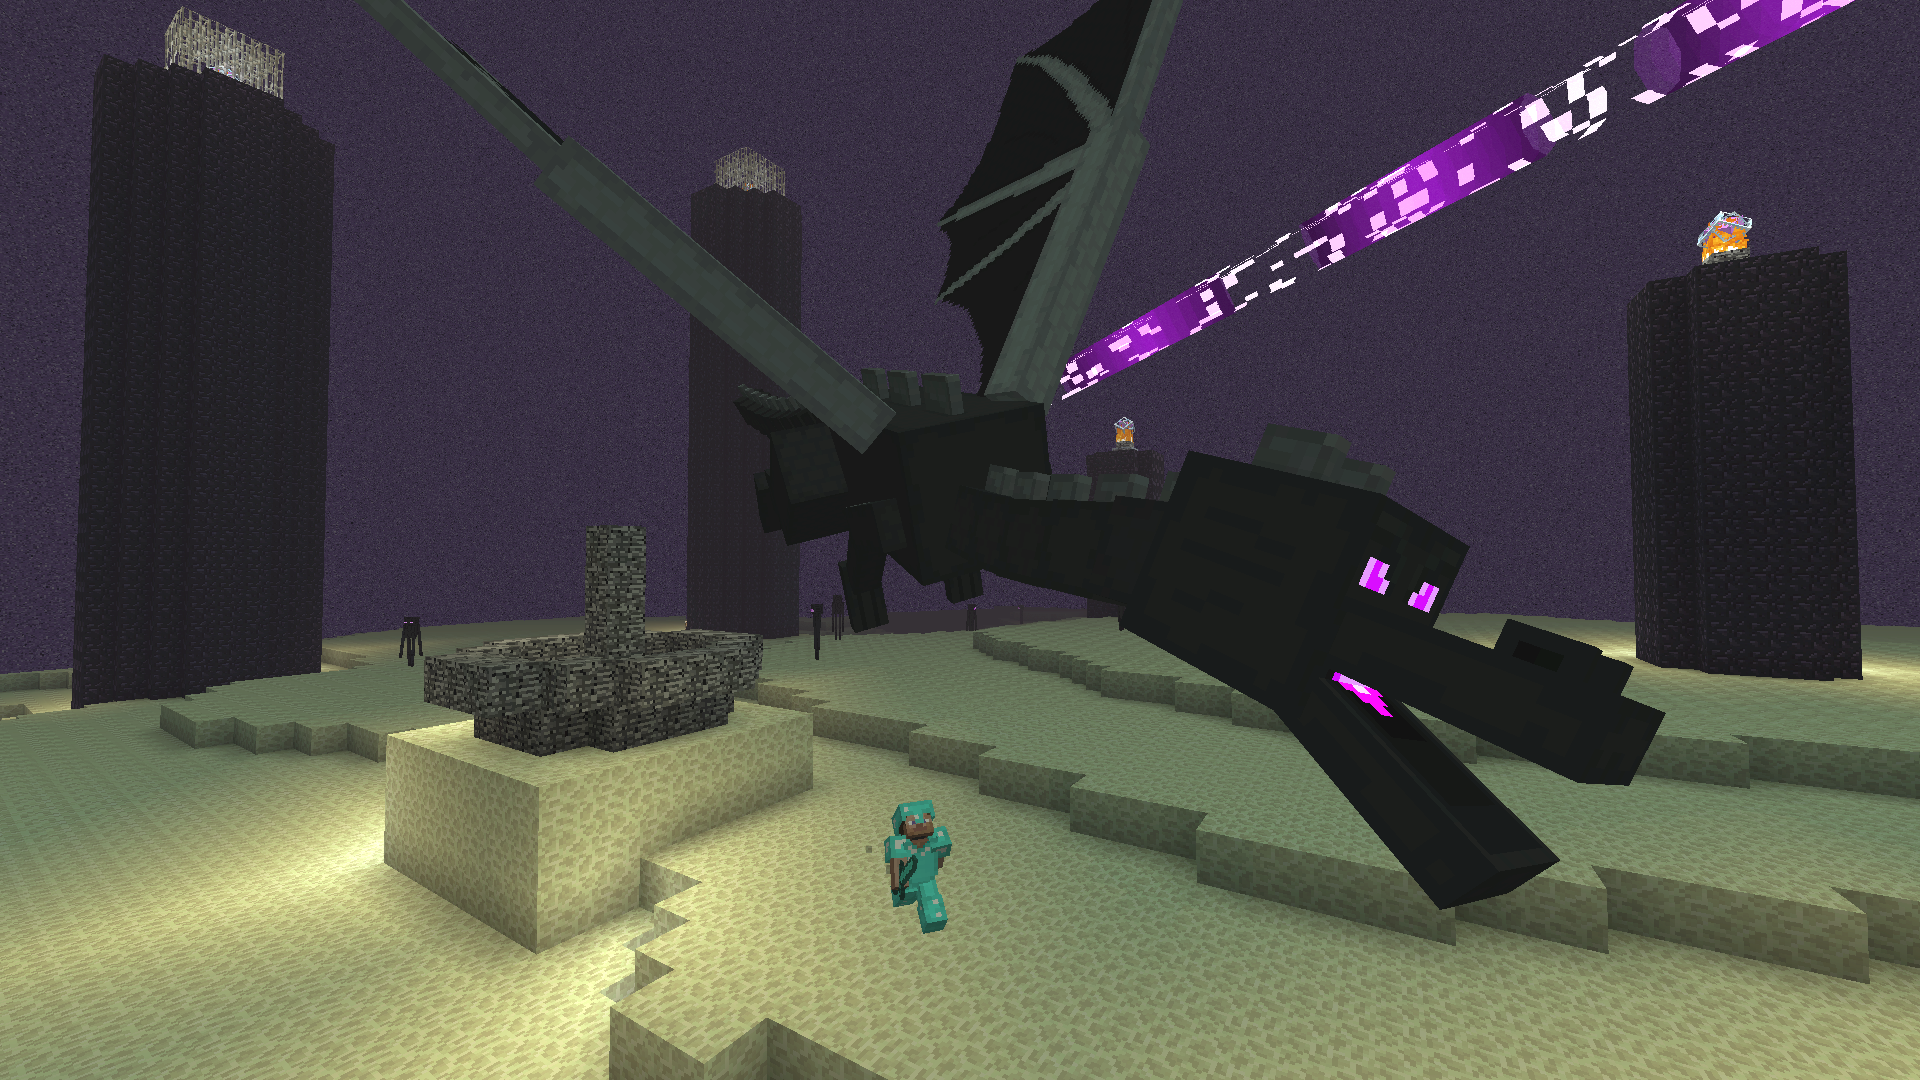 The Ender Dragon is coming to Minecraft for Windows 10